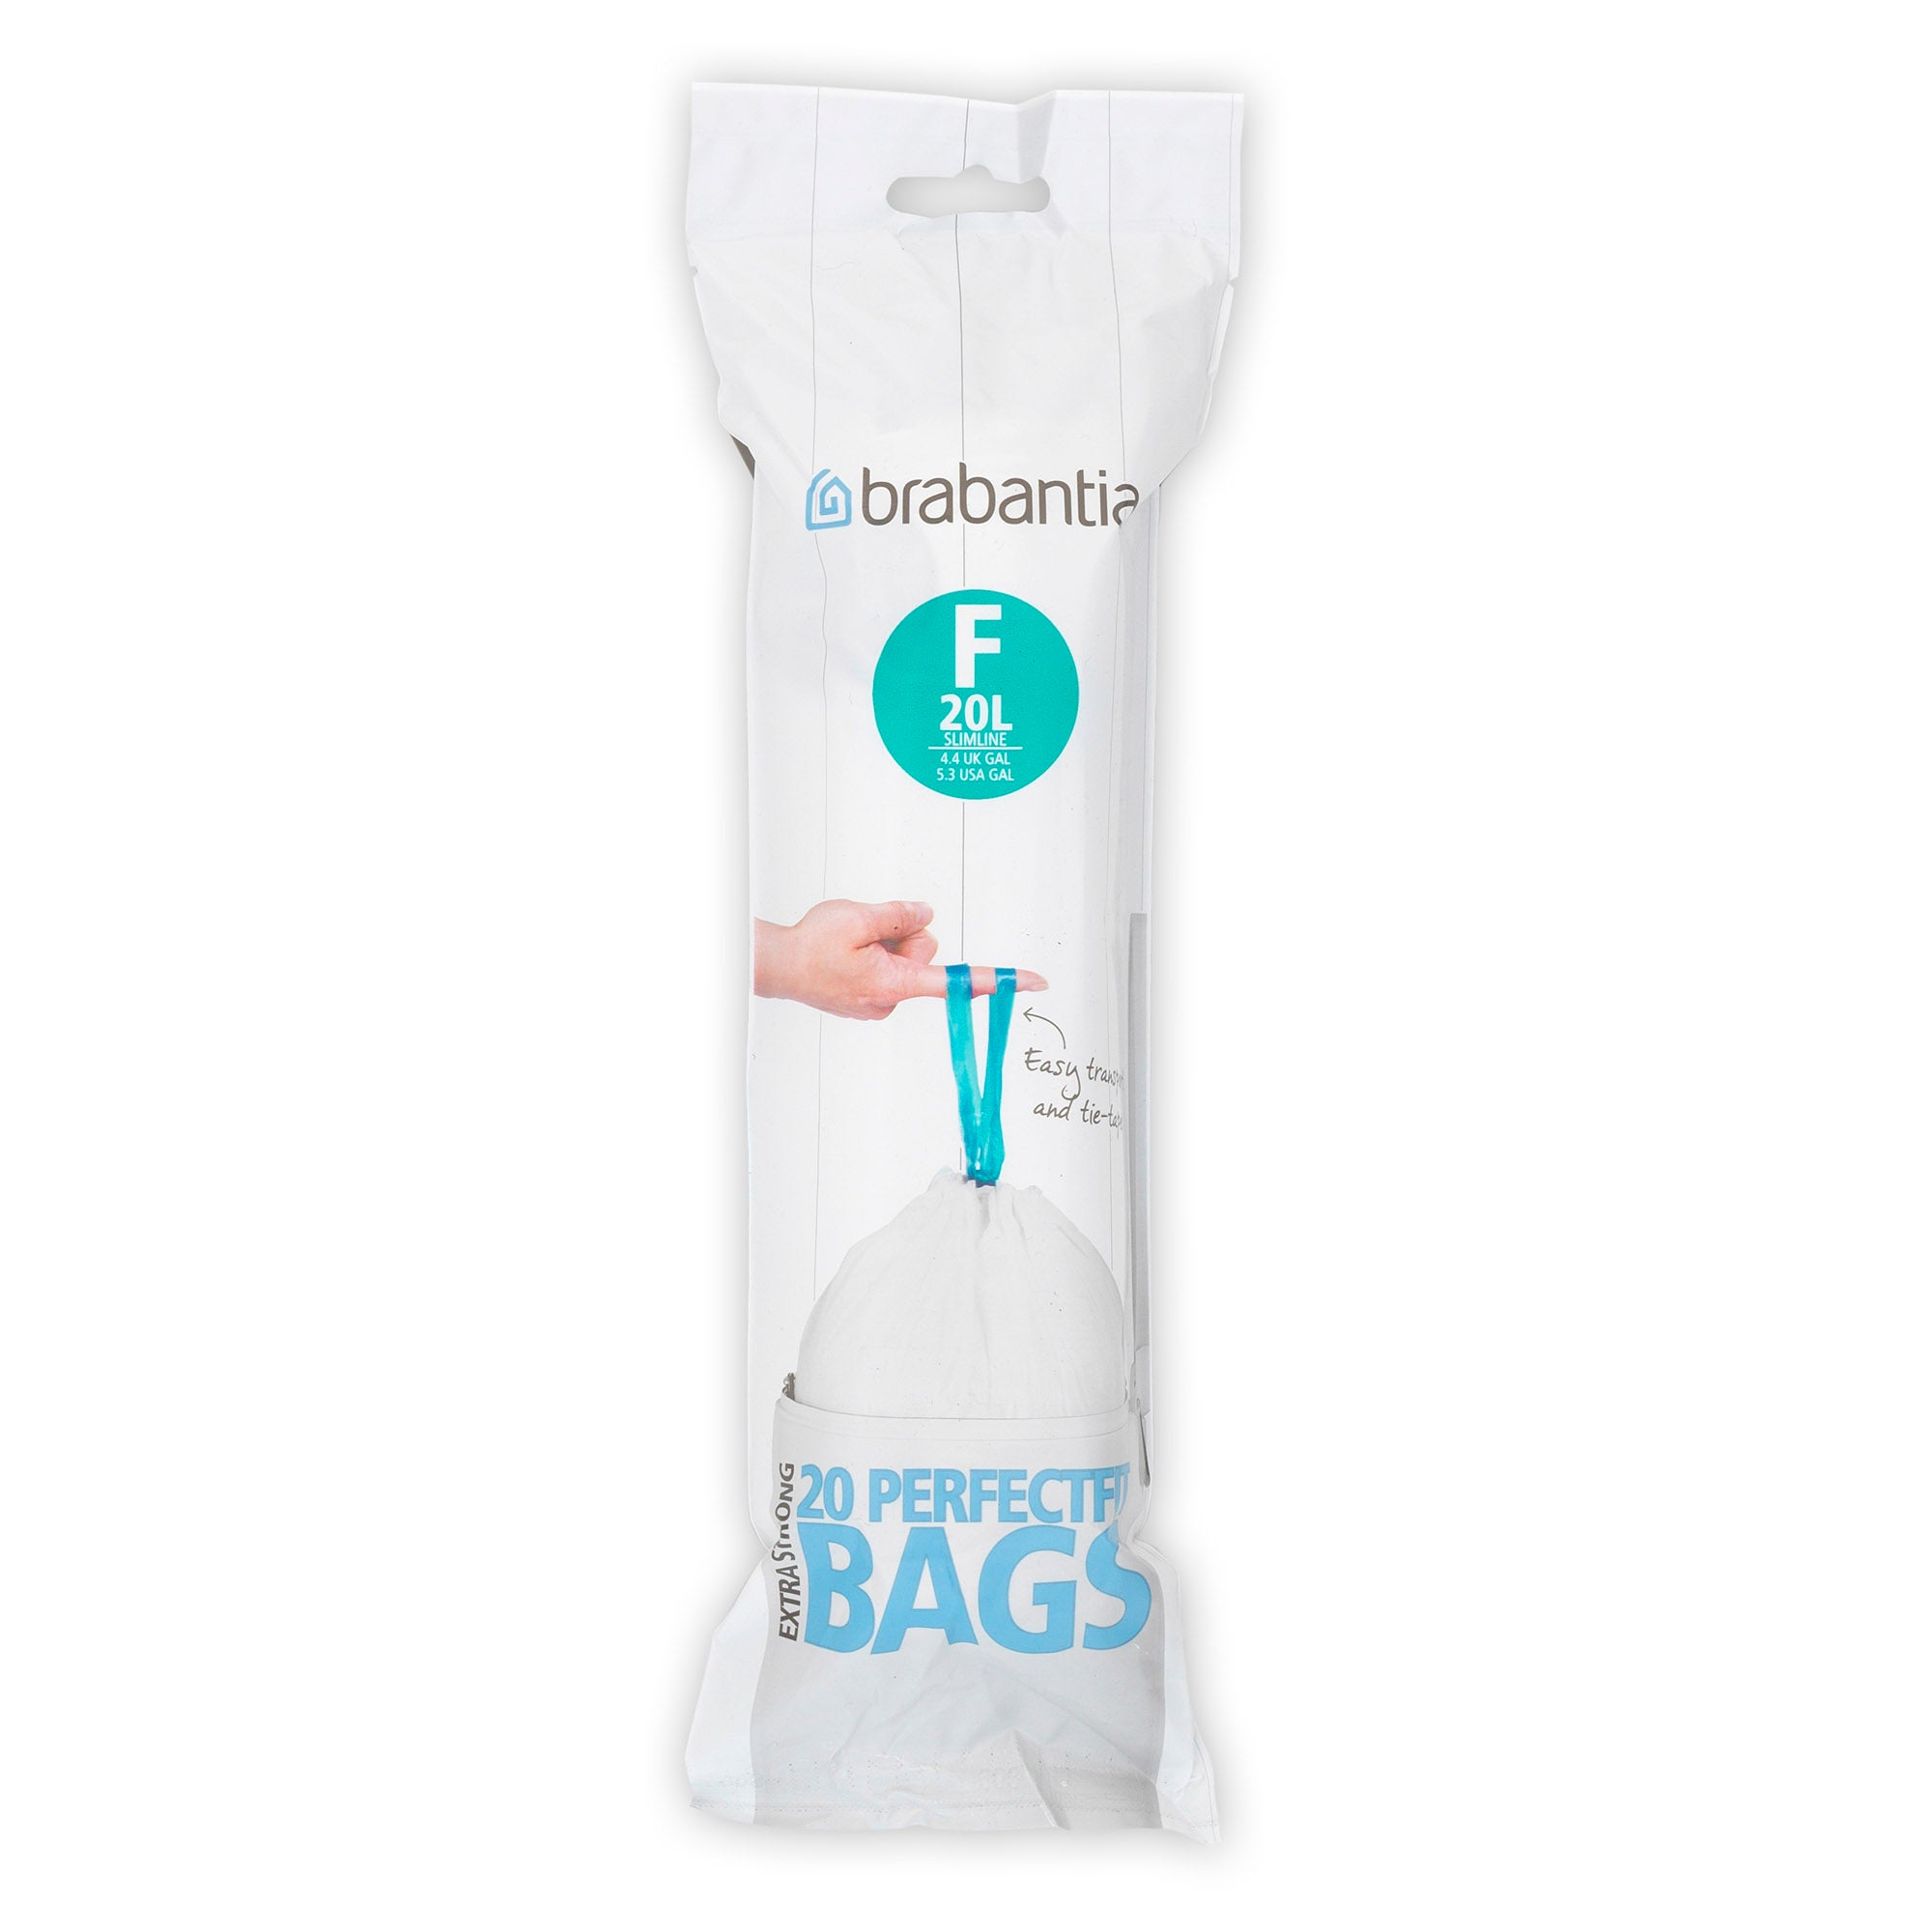 Brabantia 20 Litre Smart Fix Slim Waste Bags